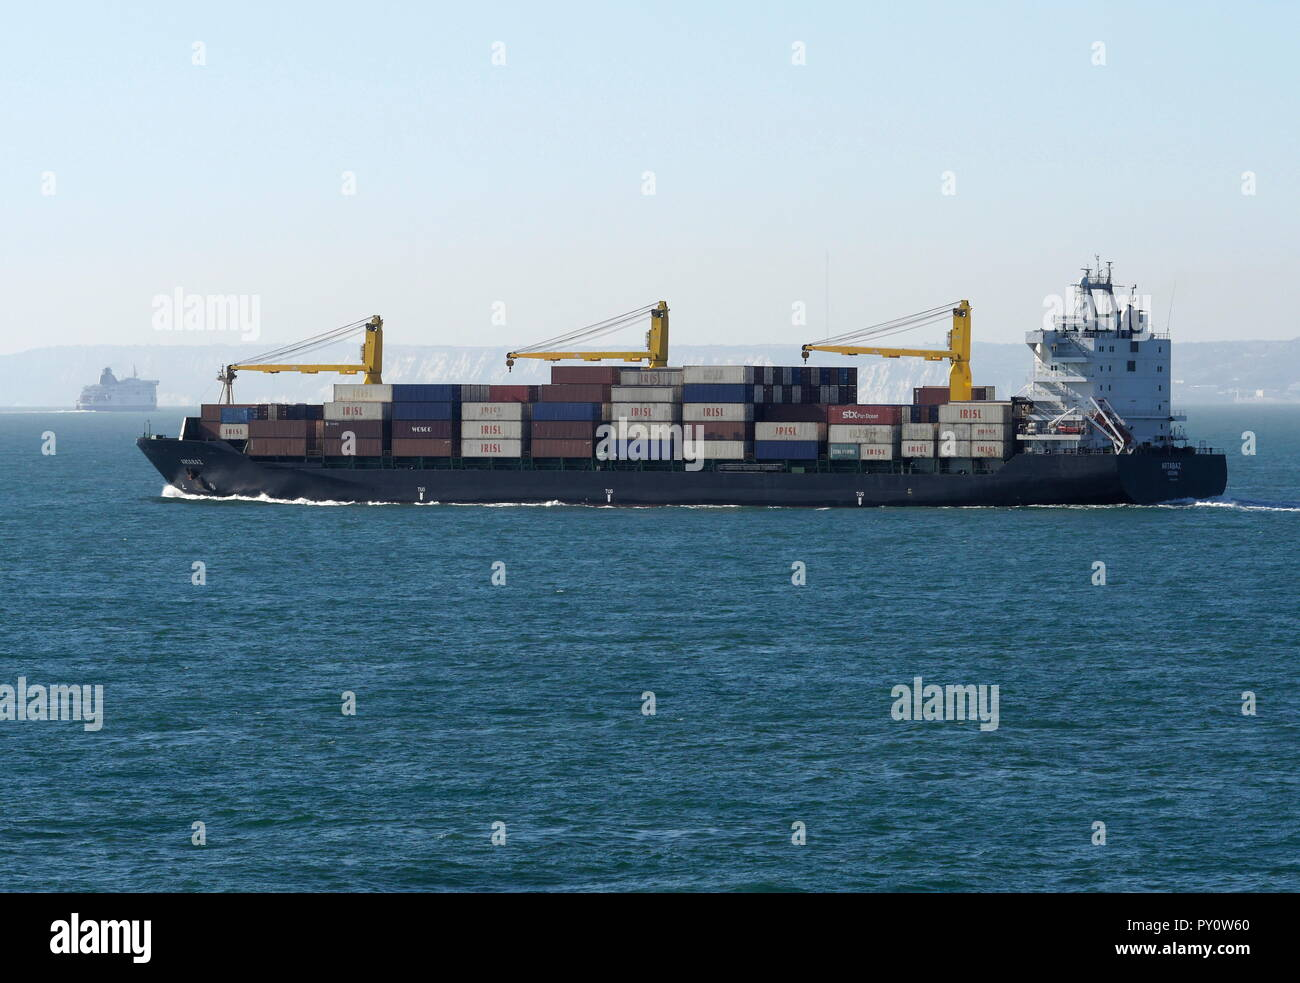 AJAXNETPHOTO. 2018. ENGLISH CHANNEL. - UNDER WAY - CONTAINER SHIP ARTABAZ HEADING WEST IN THE CHANNEL OFF THE DOVER COAST. PHOTO:JONATHAN EASTLAND/AJAX REF:GX8 182009 898 Stock Photo